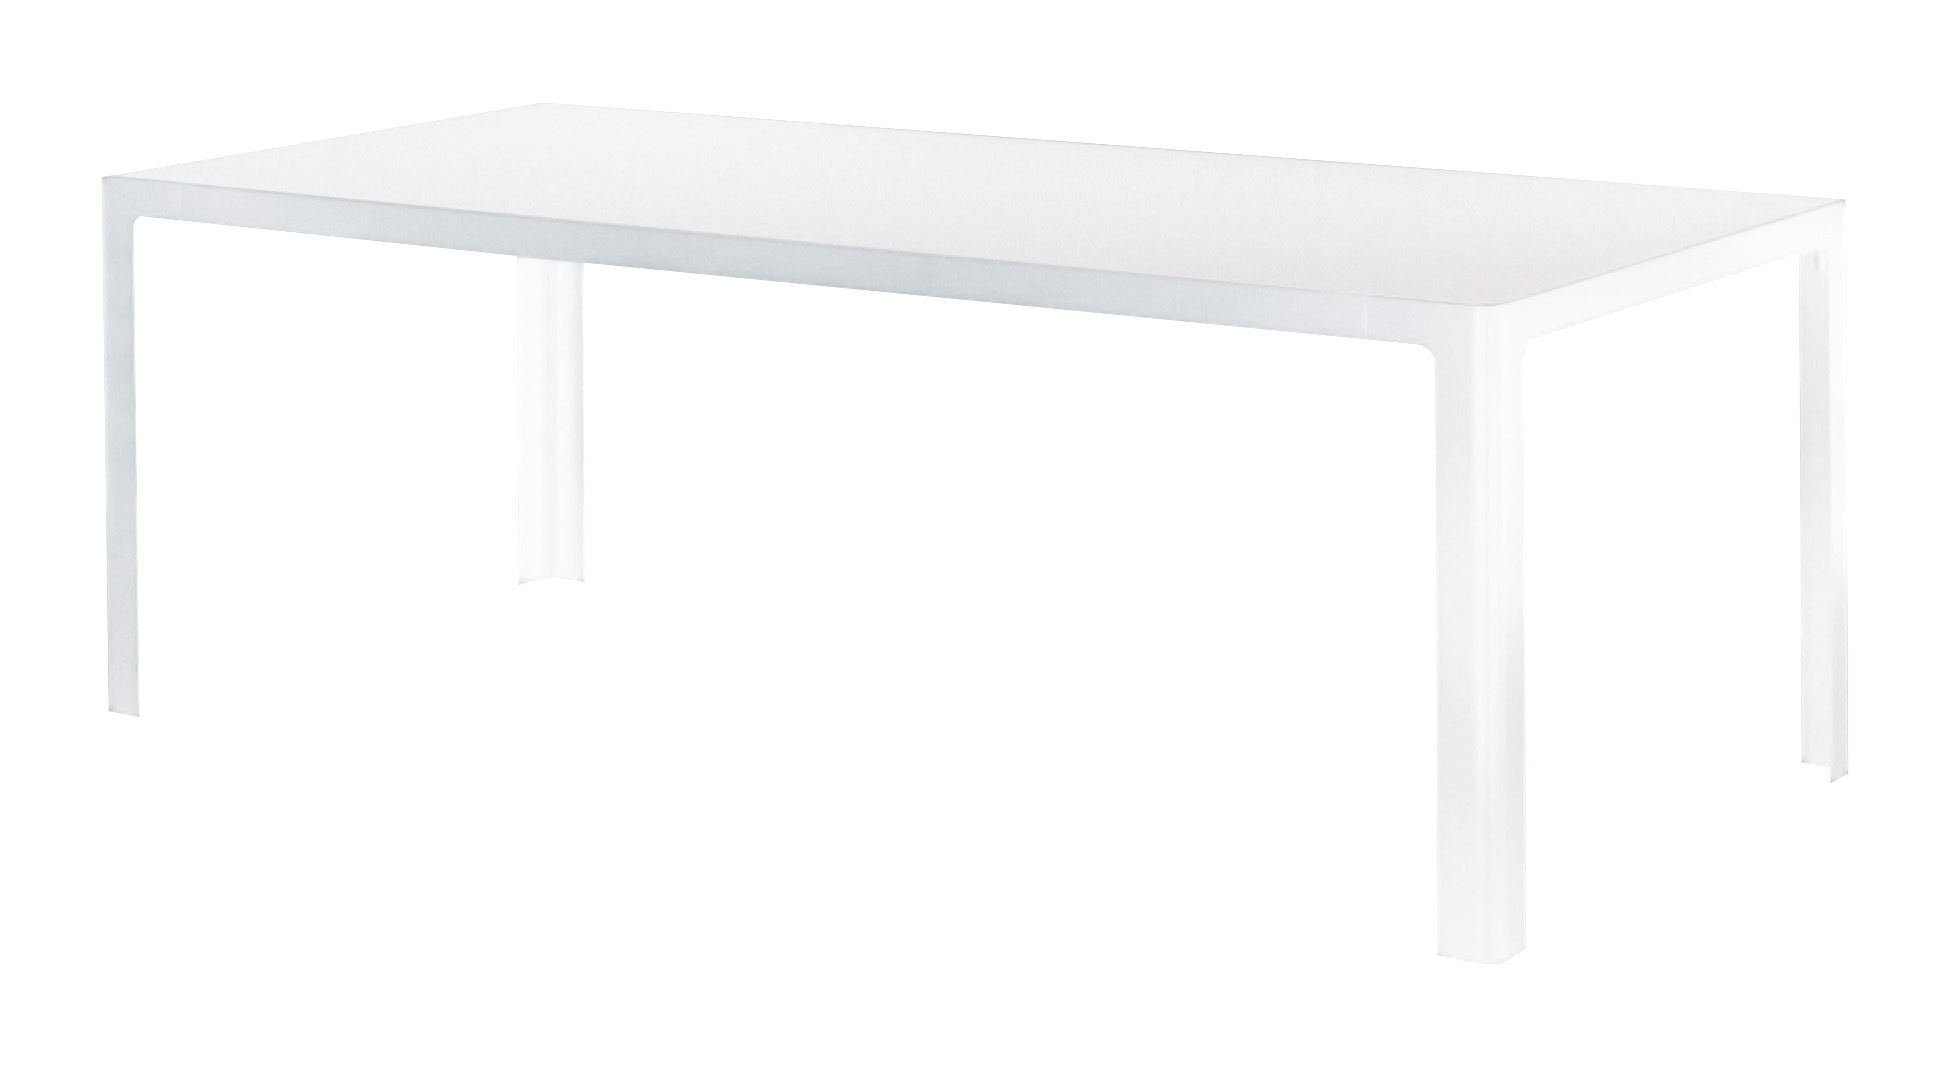 Furniture - Dining Tables - Metisse Table - rectangular L 240 cm by Zeus - White top / Semi-opaque white frame - Glass, Steel